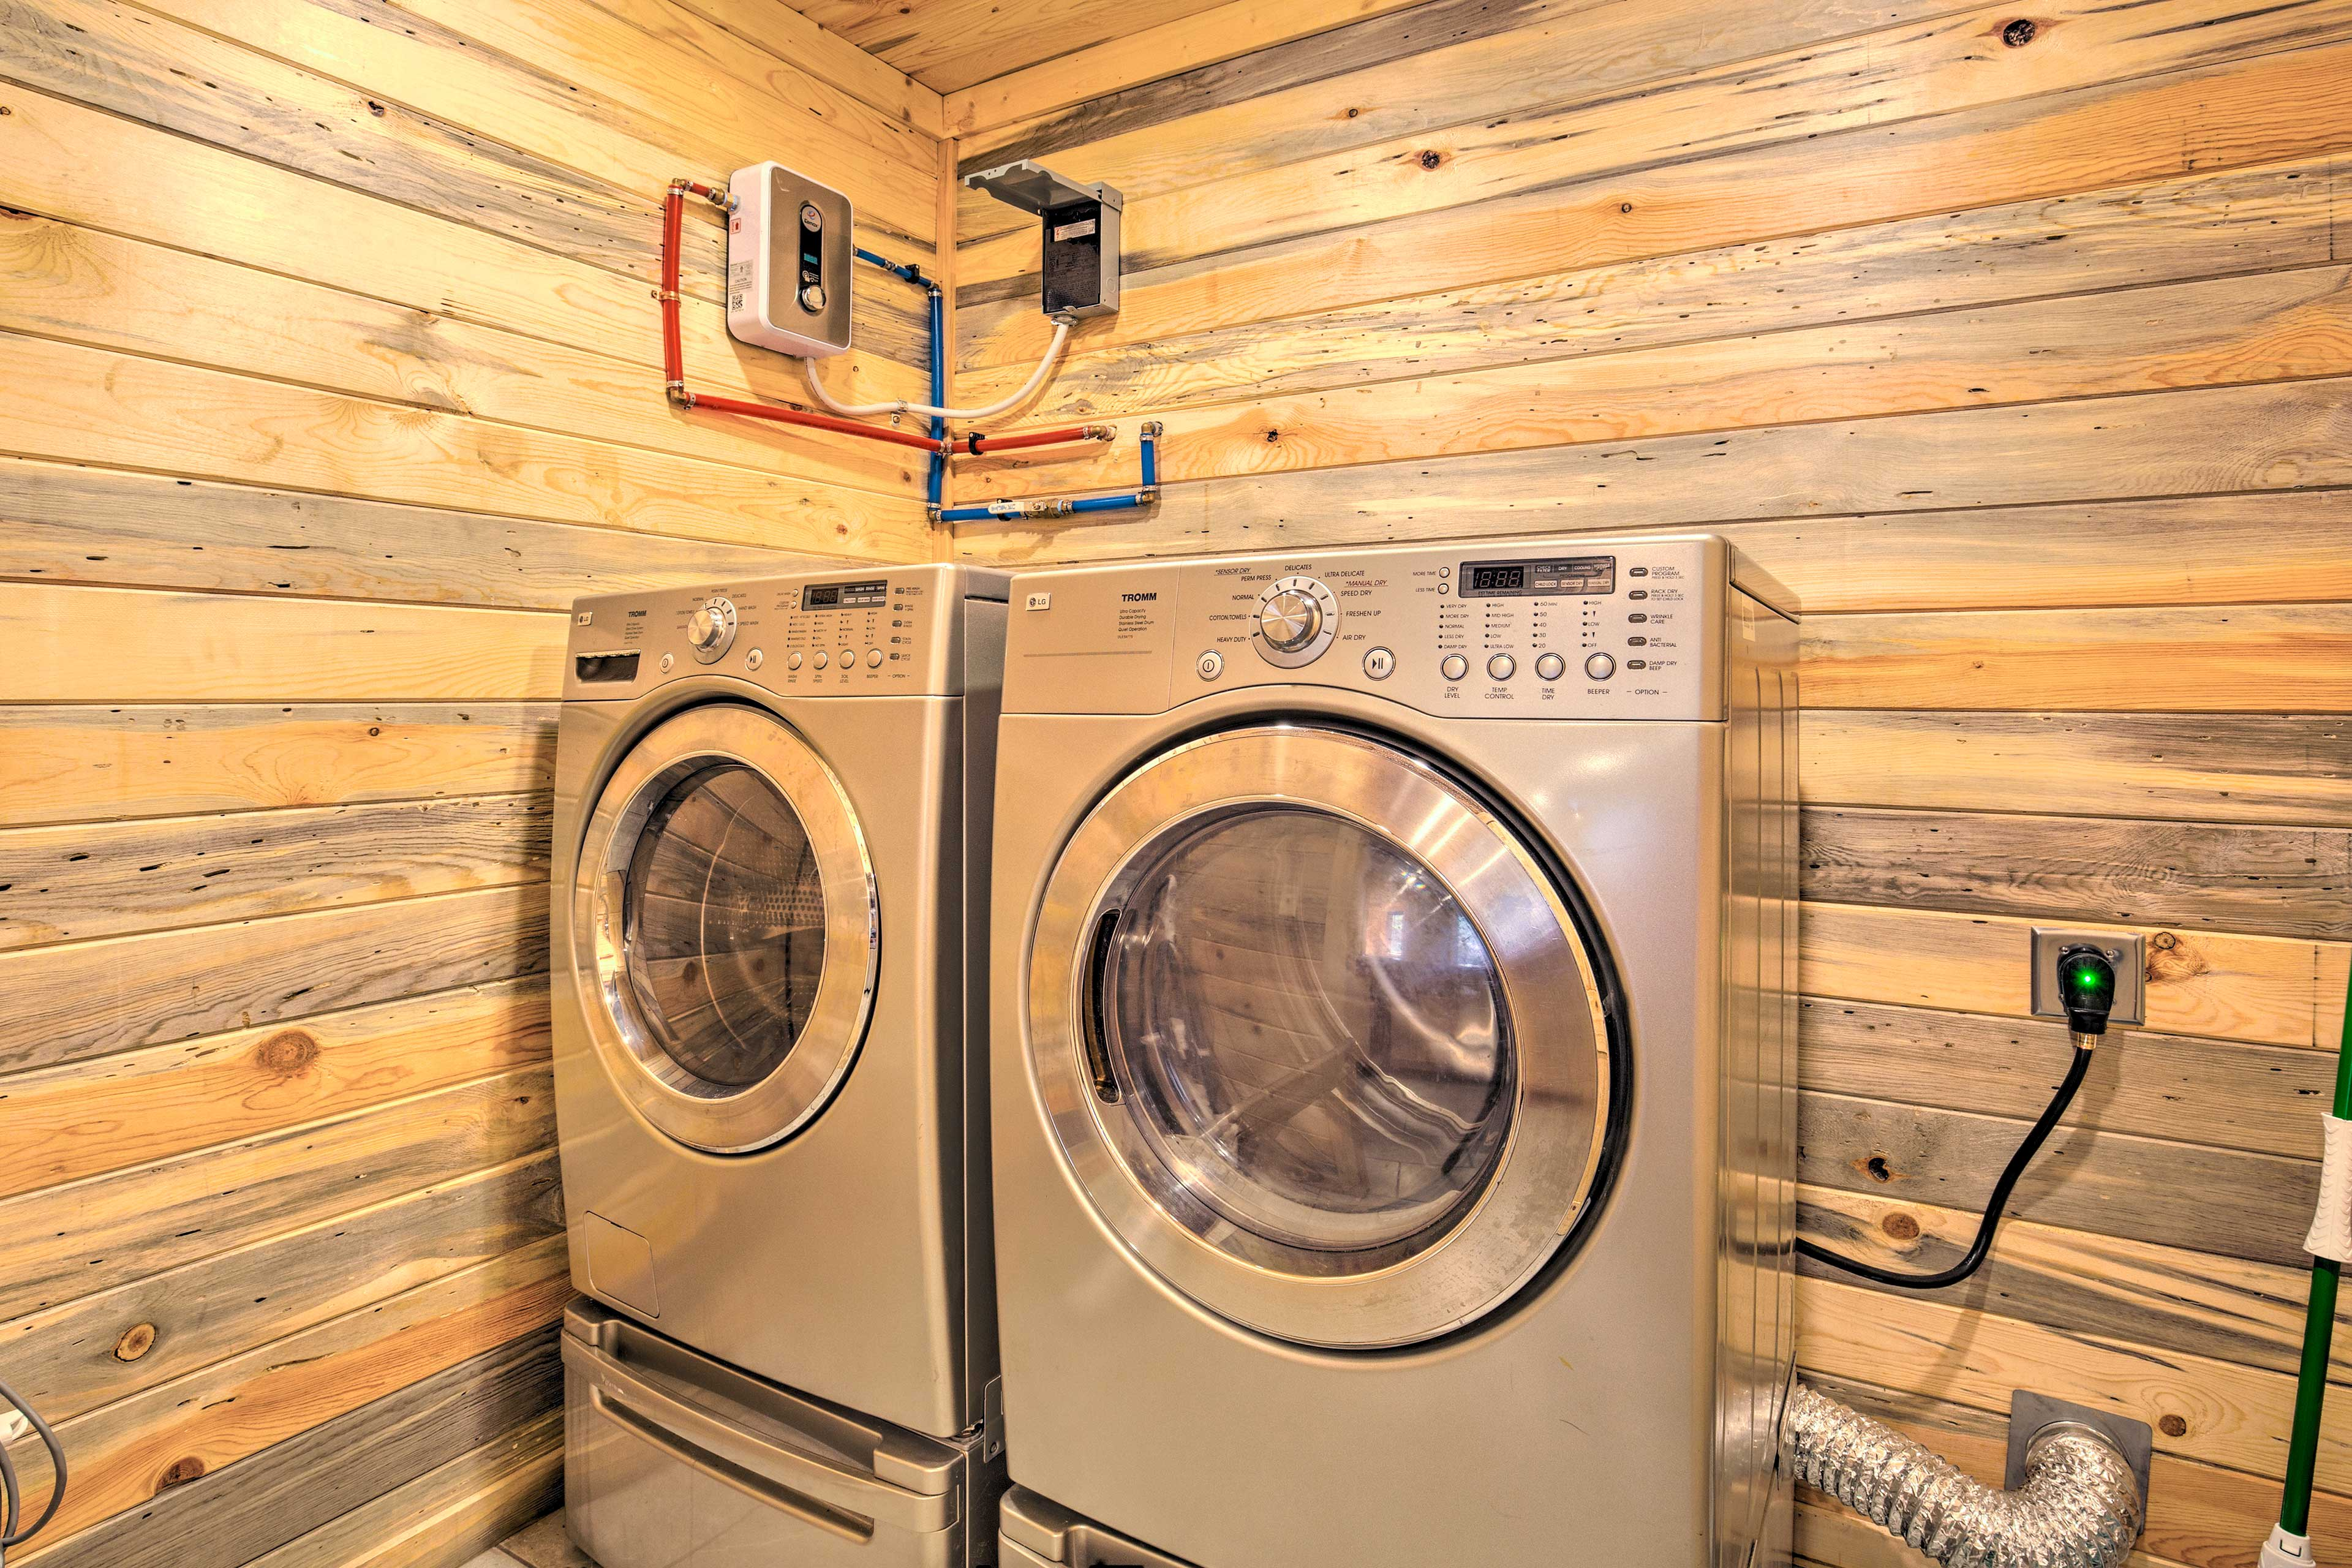 Use the washer and dryer to rinse off your dirty duds.